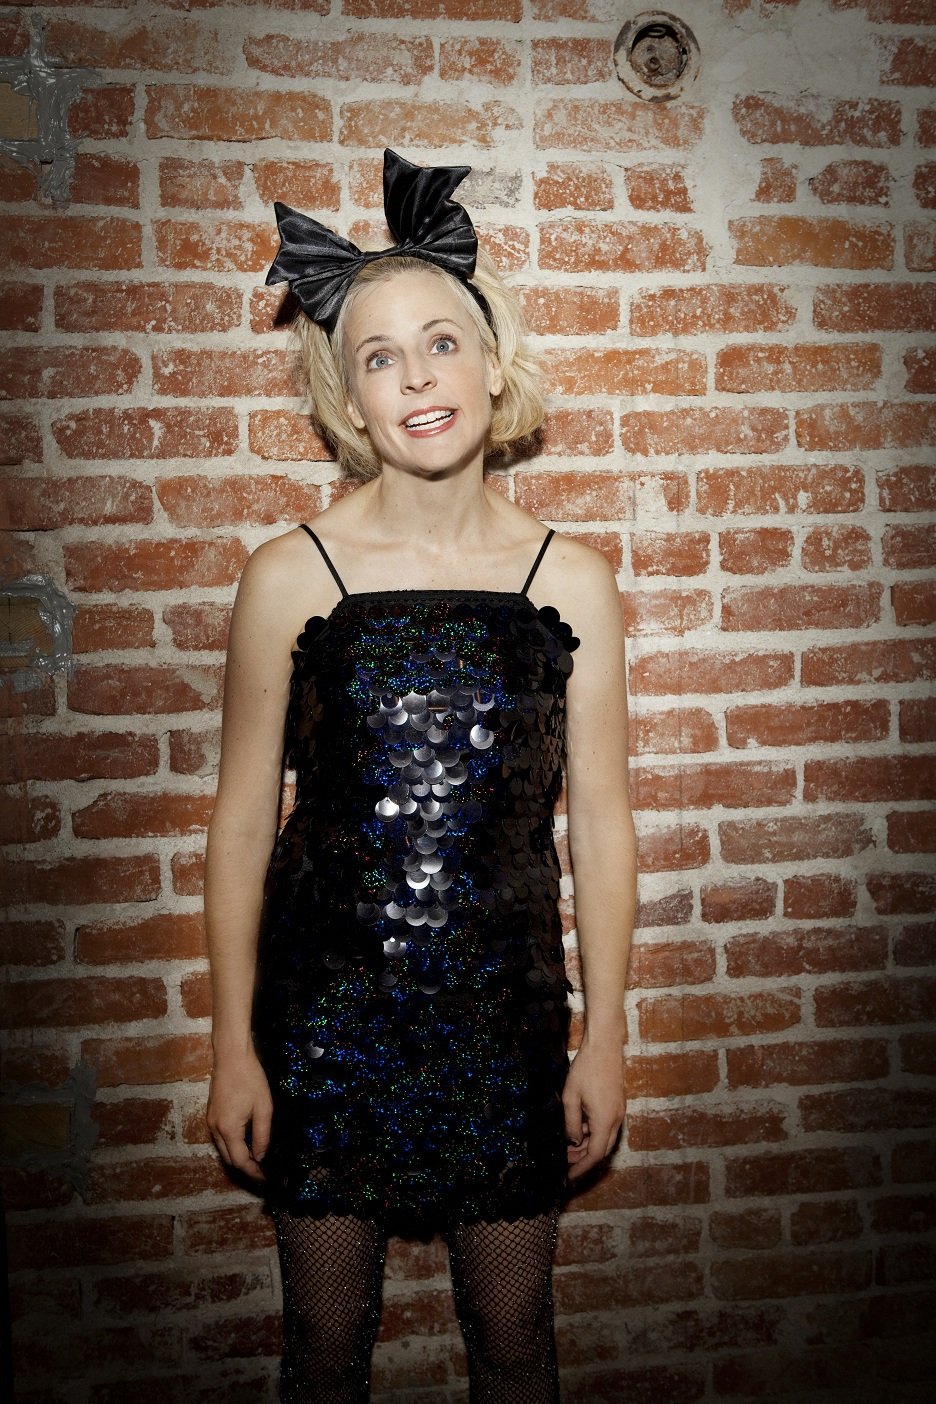 "Maria Bamford stars in the semi-autobiographical Netflix comedy series  Lady Dynamite , lauded as ""revelatory"" by  Entertainment Weekly  and one of 2016's must-see shows by  Variety  and  Rolling Stone .  The series was created by Mitch Hurwitz ( Arrested Development ) and Pam Brady ( South Park ).  Maria is the creator and star of  Maria Bamford: the special special special  and of the cult hit web series  The Maria Bamford Show , which screened at the Museum of Art and Design.  She was the first female comic to have two half-hour  Comedy Central Presents  specials and starred alongside Patton Oswalt, Zach Galifianakis and Brian Posehn in the Comedy Central series  The Comedians of Comedy  and Netflix's  Comedians of Comedy: The Movie .    Maria voices characters on numerous animated series including  BoJack Horseman ,  Adventure Time ,  Legend of Korra, Puss in Boots  and PBS's Emmy-winning series  Word Girl .  She can also be heard voicing lead roles on Fox's  Golan the Insatiable  and Yahoo's  Talking Tom & Friends .  Maria recurred as DeBrie Bardeaux on Netflix's  Arrested Development  reboot, for which she was praised as a ""standout"" ( TIME ) and ""perhaps one of the high points of the entire new season"" ( Black Book Magazine ).  She has also recurred on USA's  Benched , fX's critically-praised  Louie , and currently recurs on the ABC hit  Fresh Off the Boat .   Her new special  Old Baby  is available on Netflix."